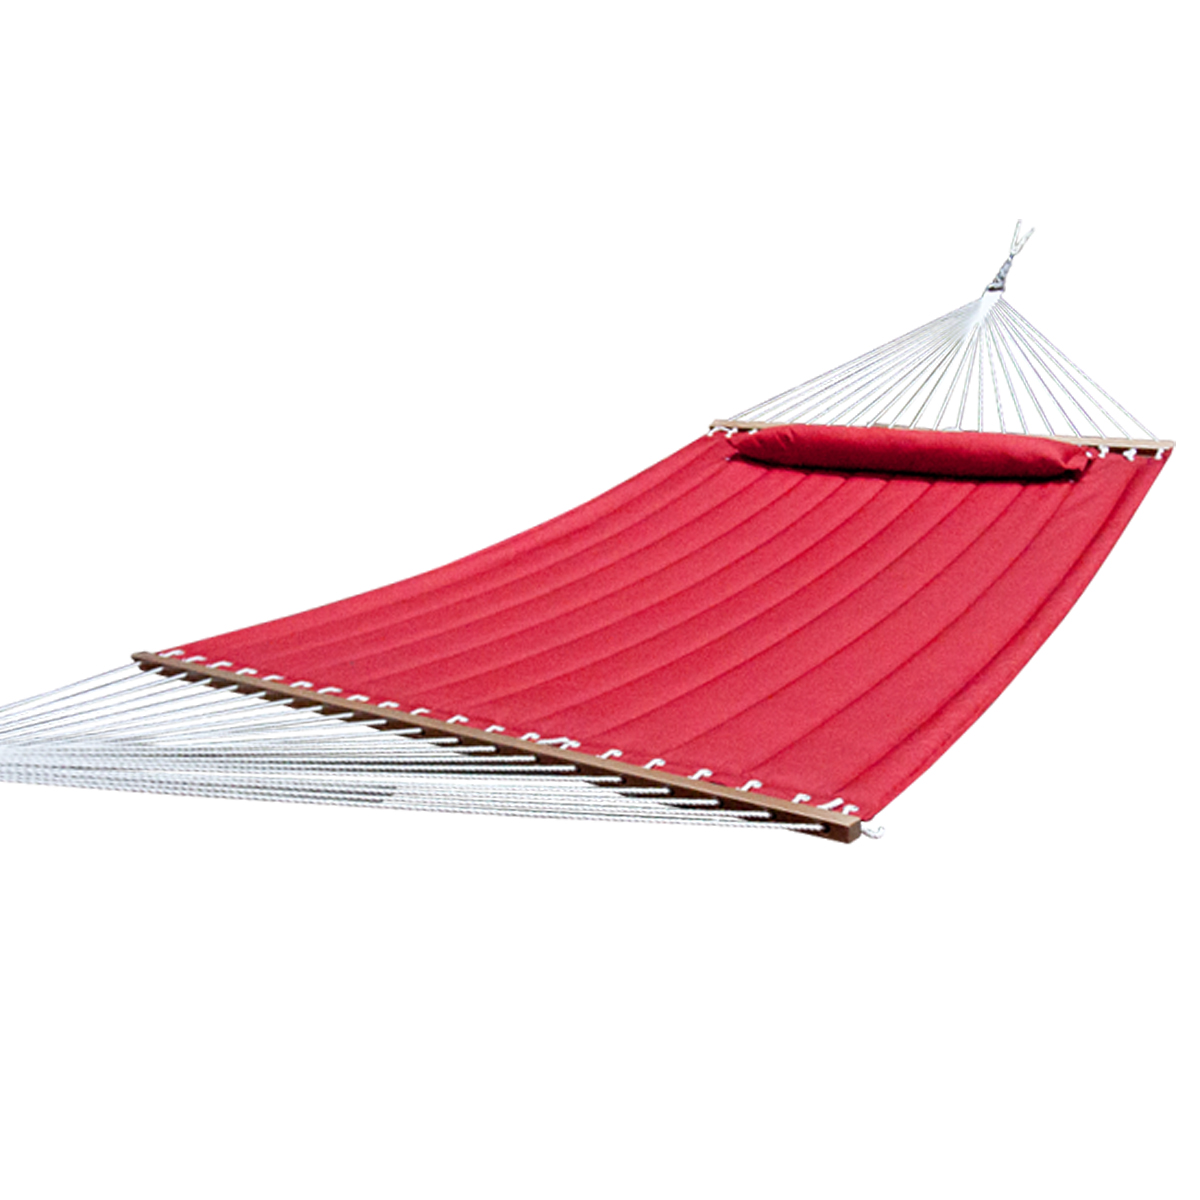 New quilted outdoor hammock cotton sleeping bed camping for Net hammock bed